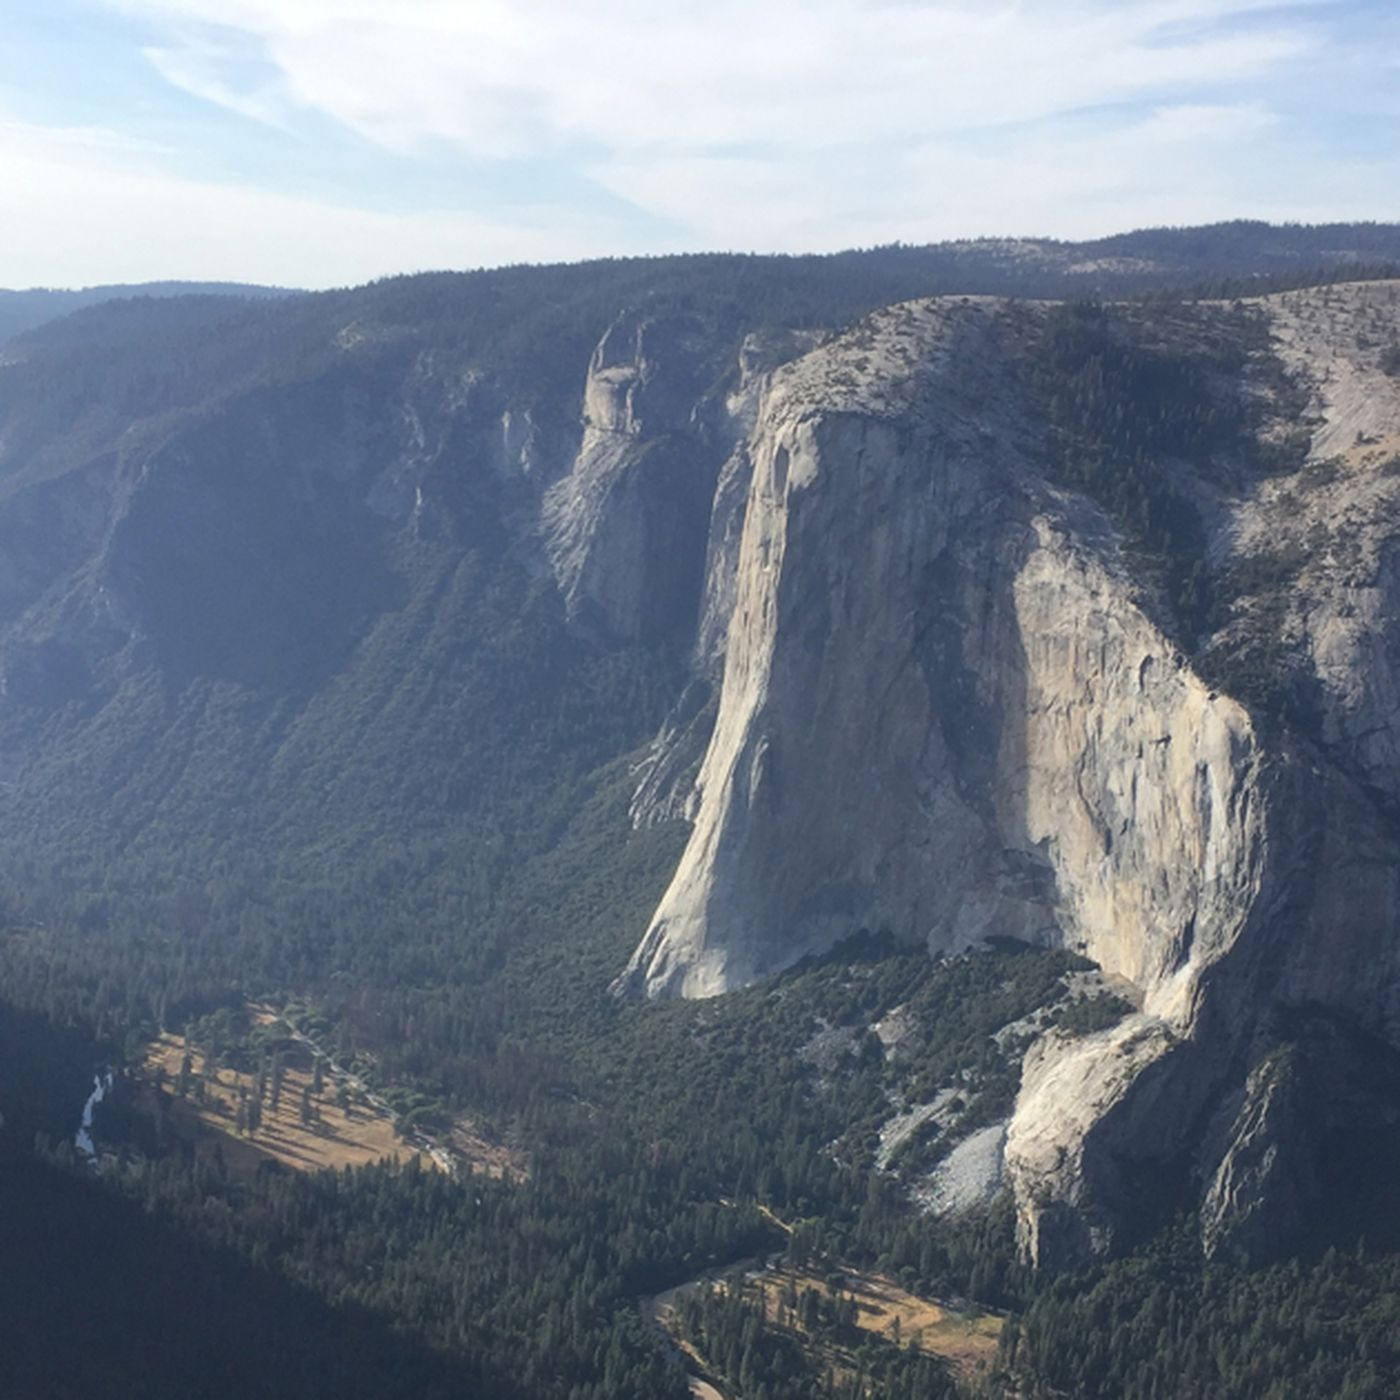 This tourist fell to death from rocks near Yosemite